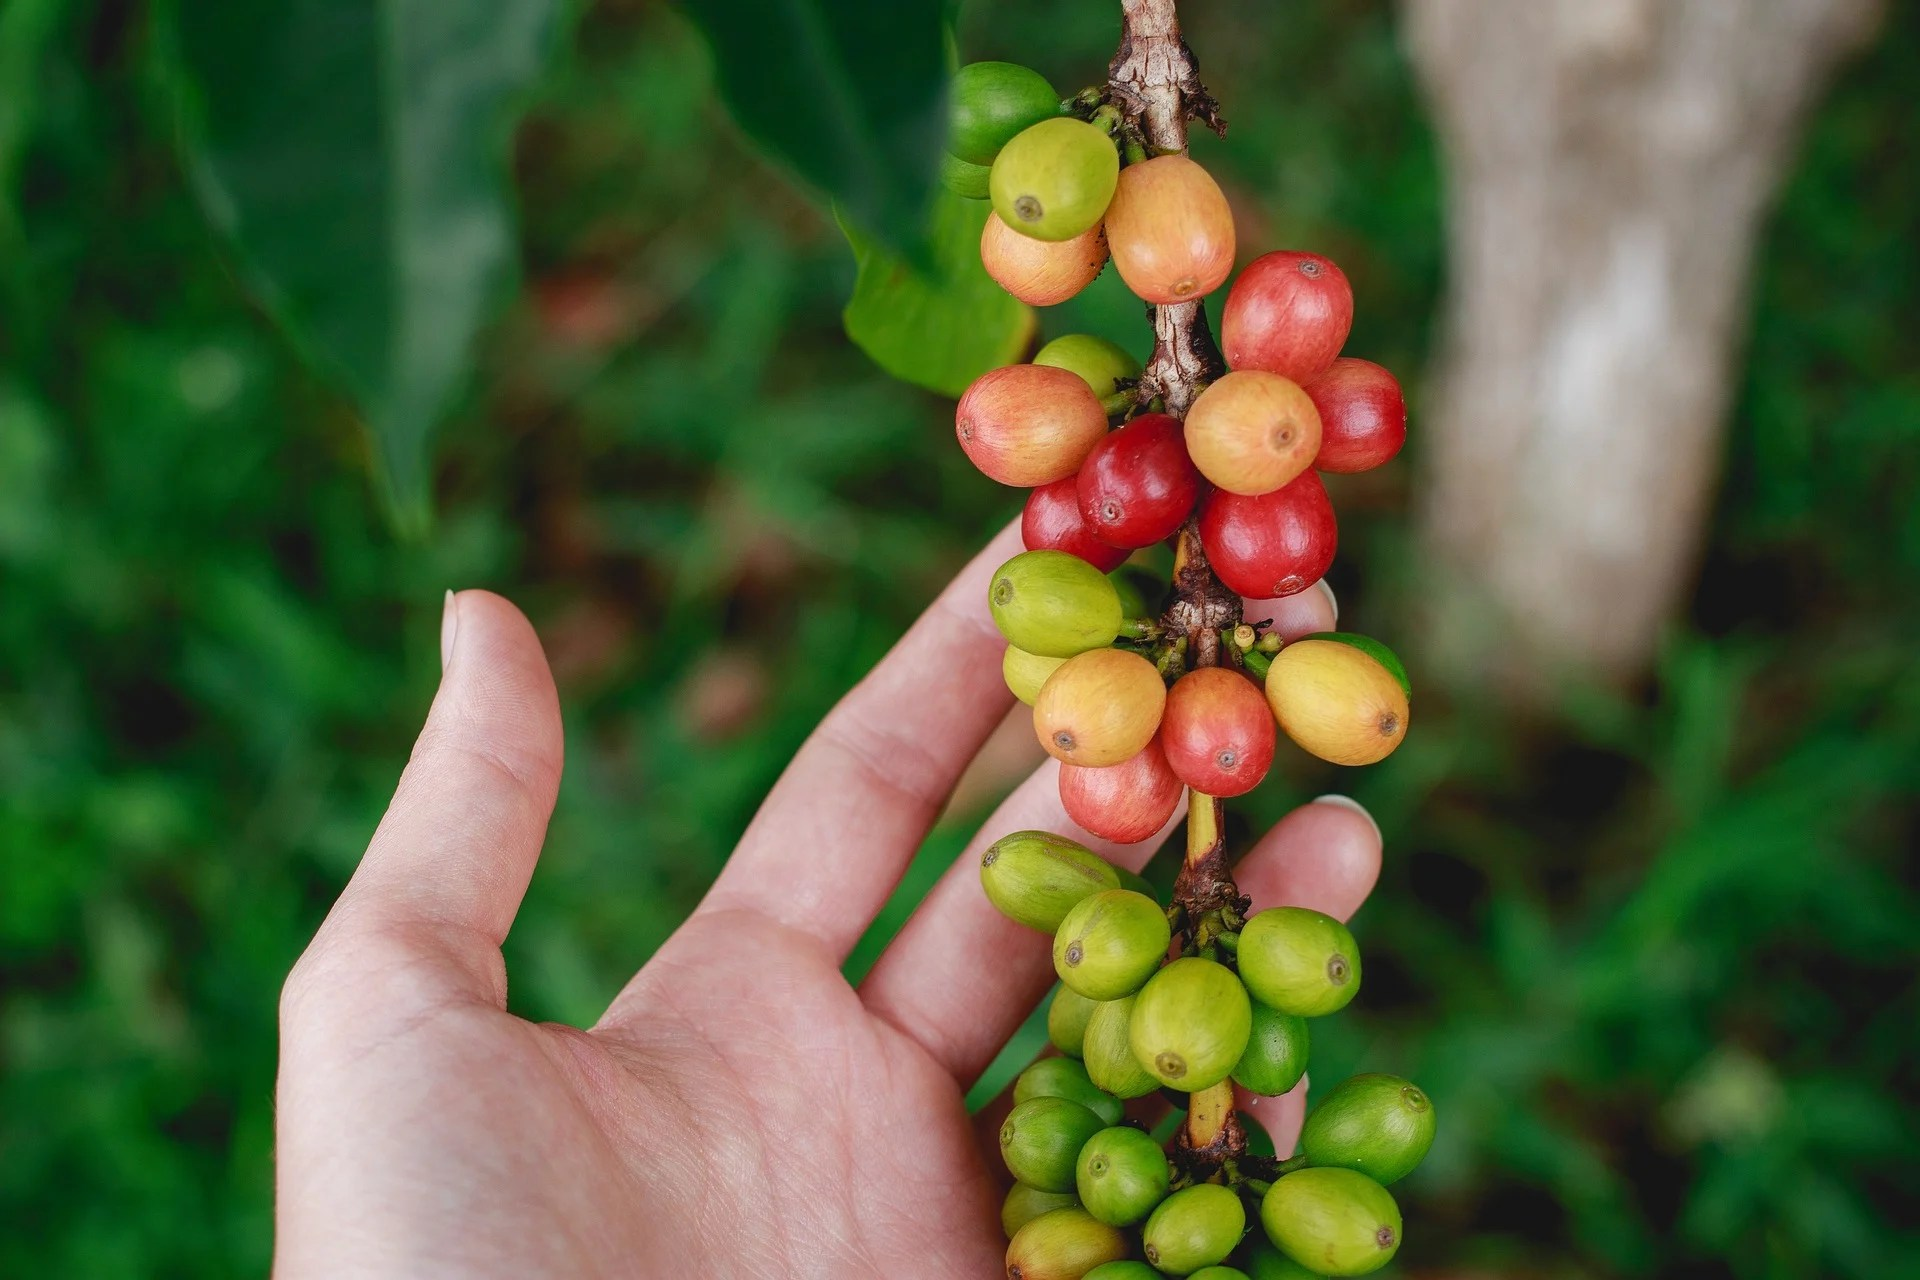 Symbiotic bacteria might have helped coffee plants adapt to climate change in the past.